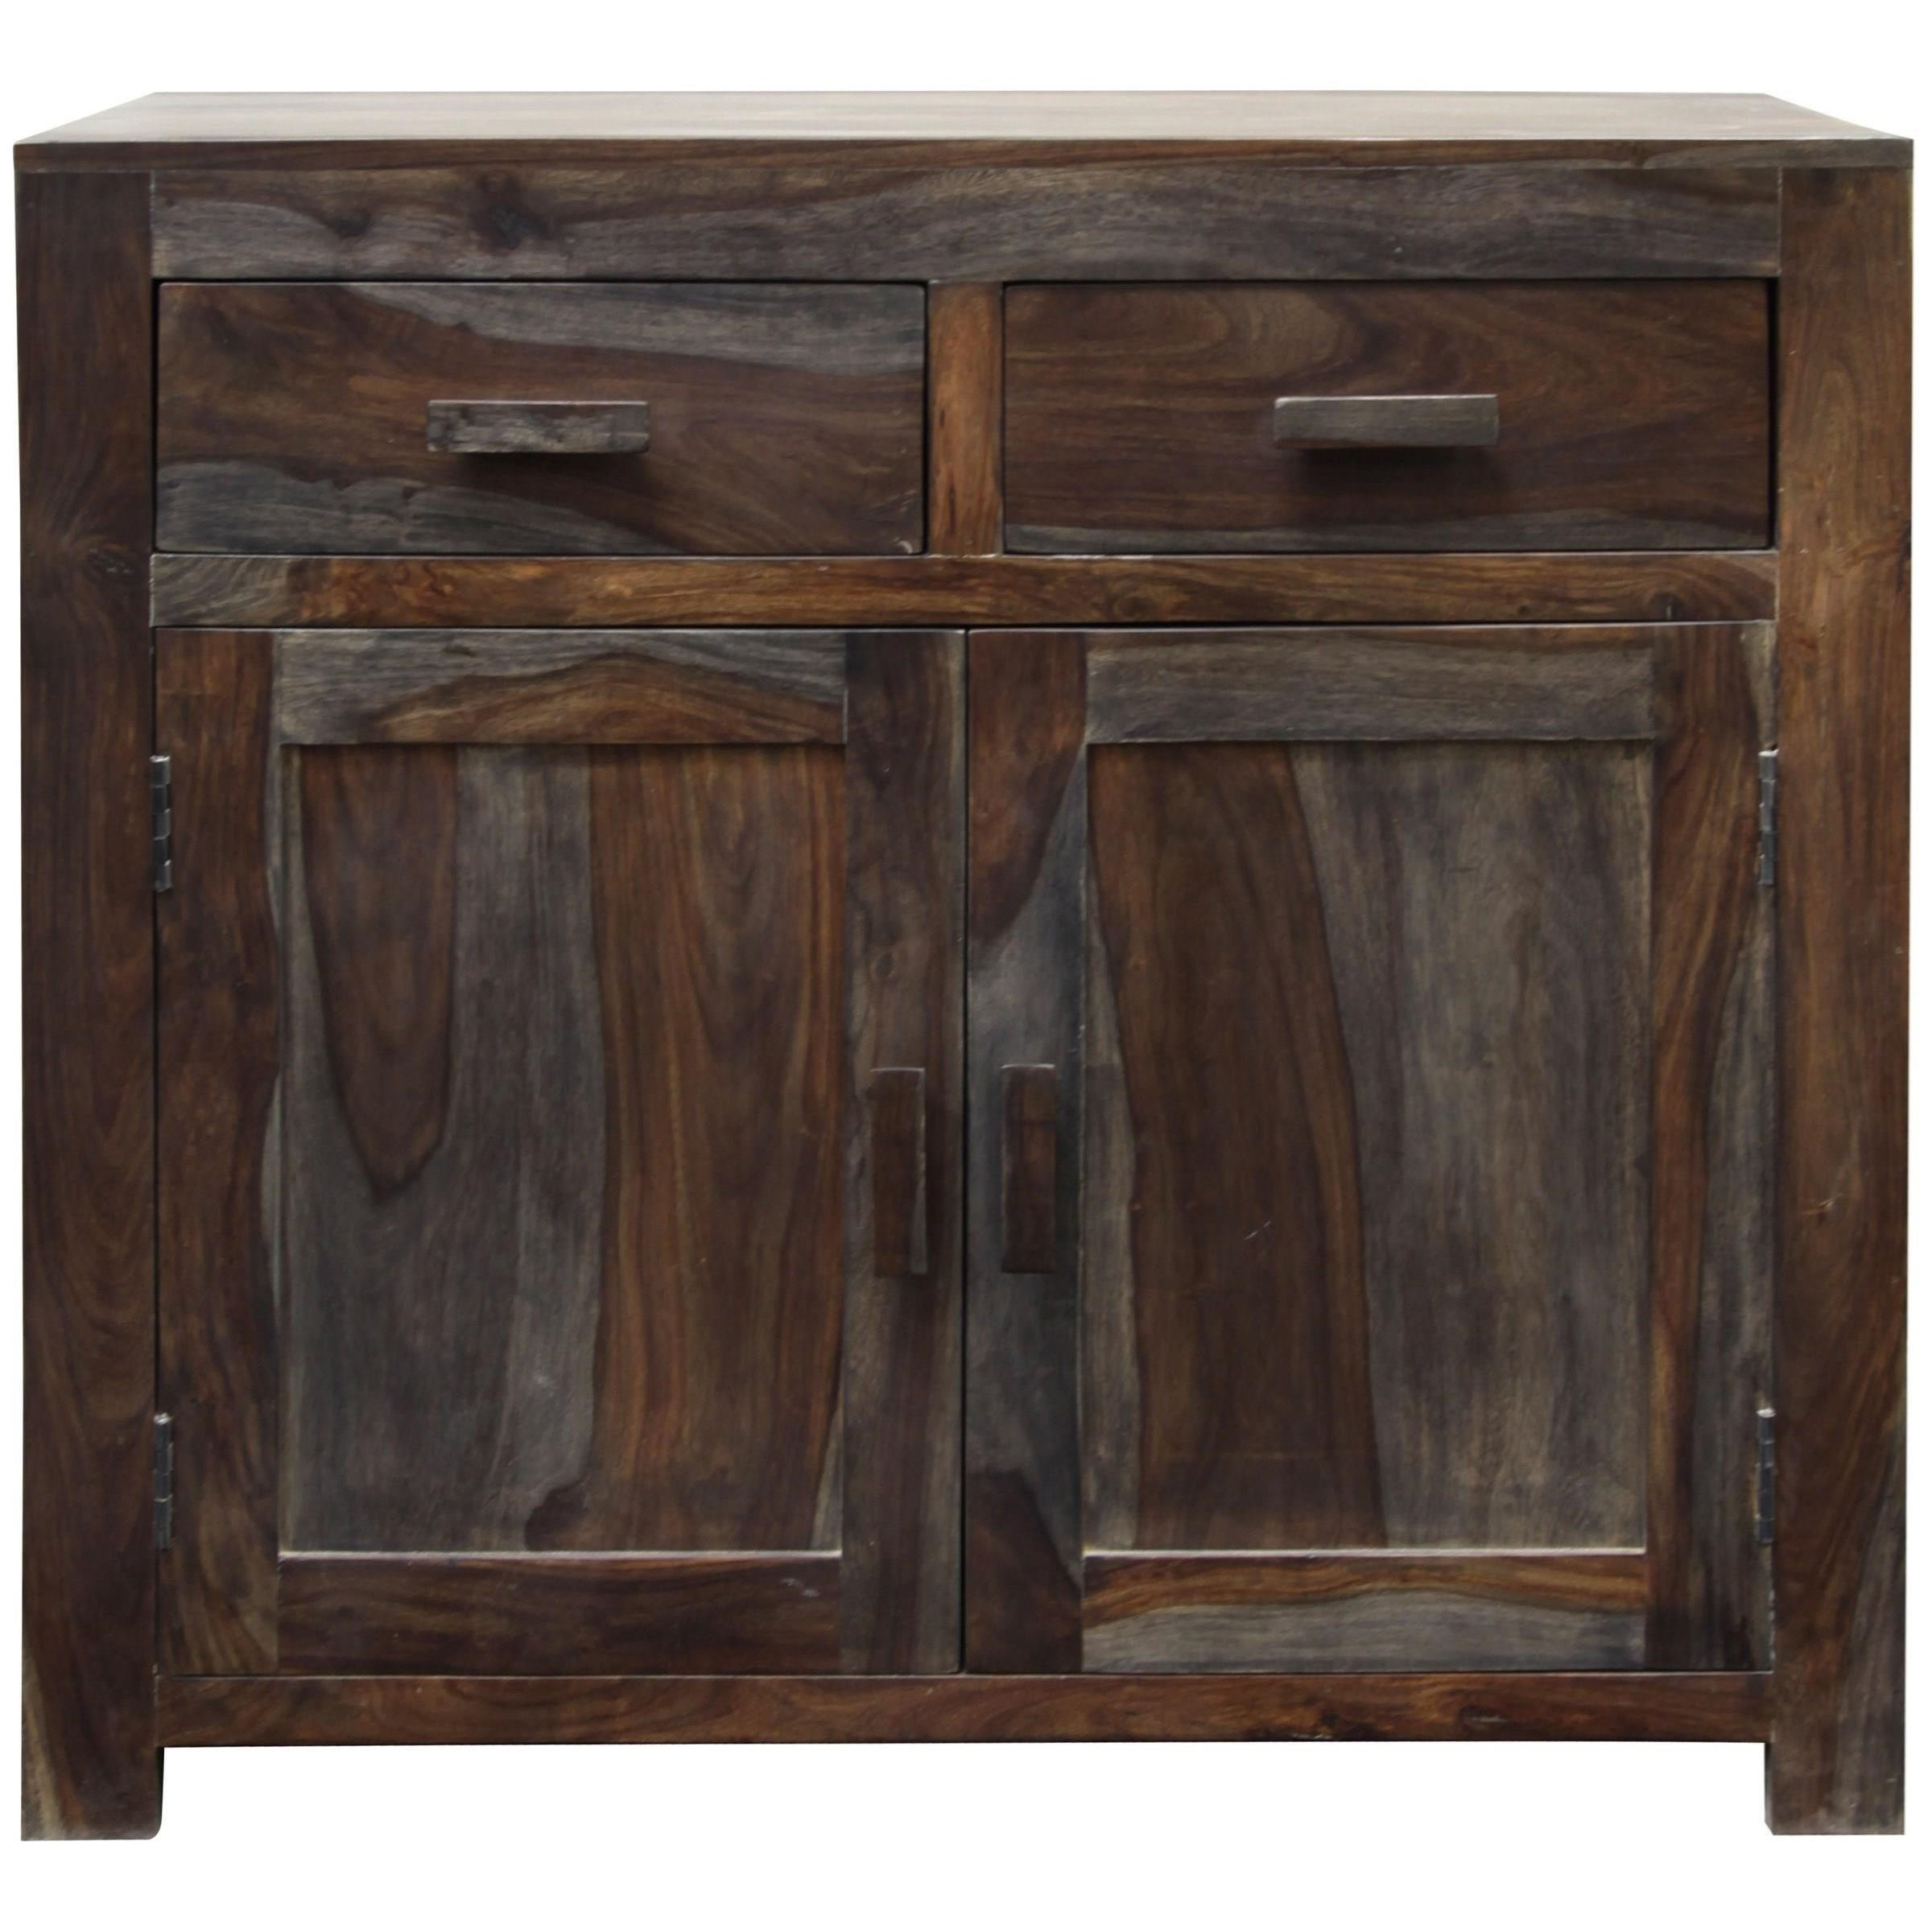 2 Door, 2 Drawer Sideboard